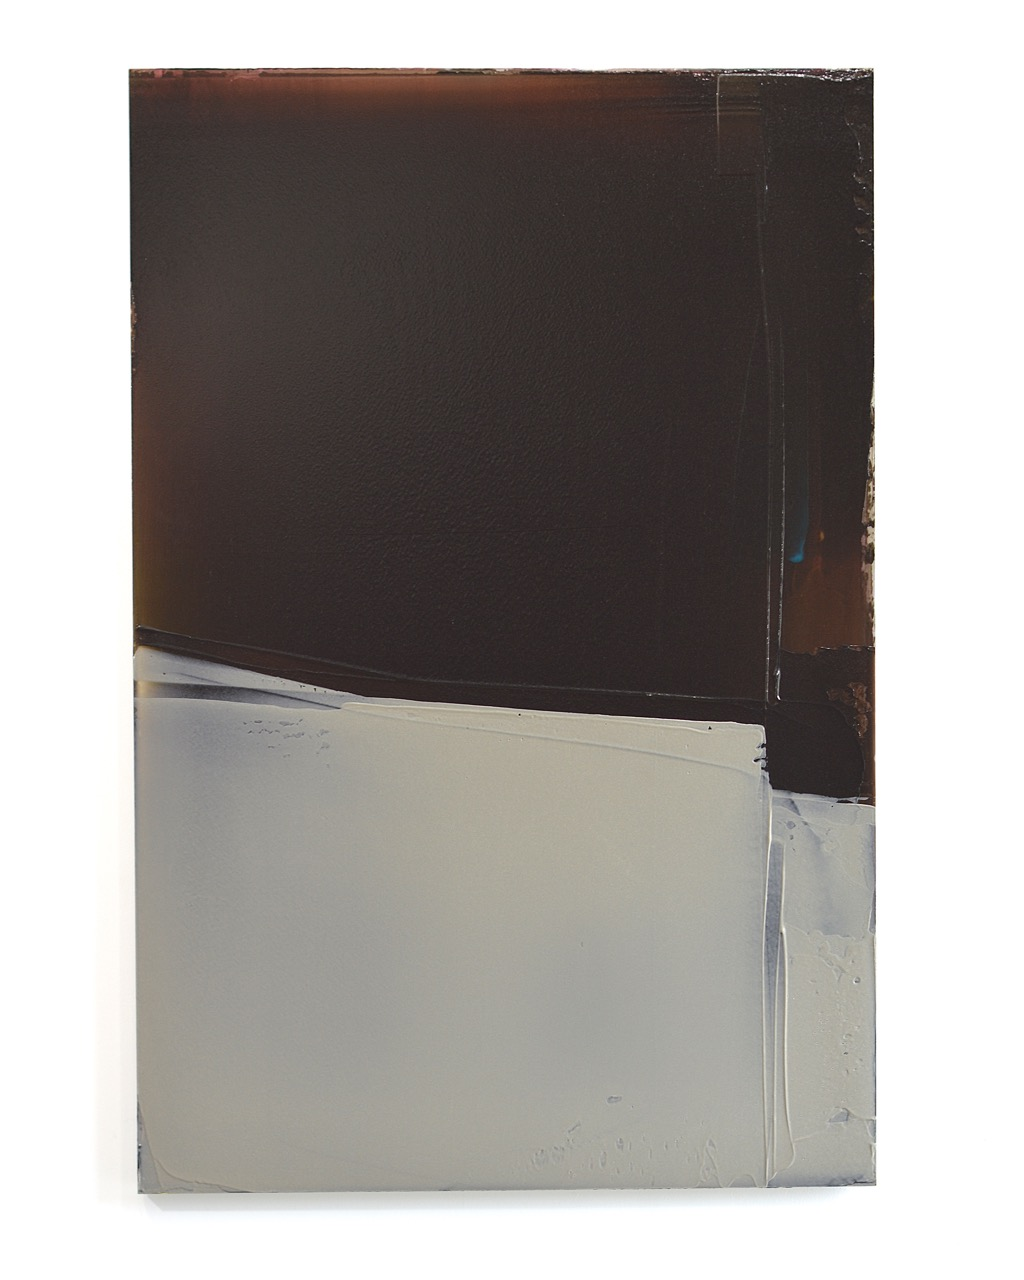 Untitled (Black and MM Gray Composition), 2013, 150x100cm.jpg